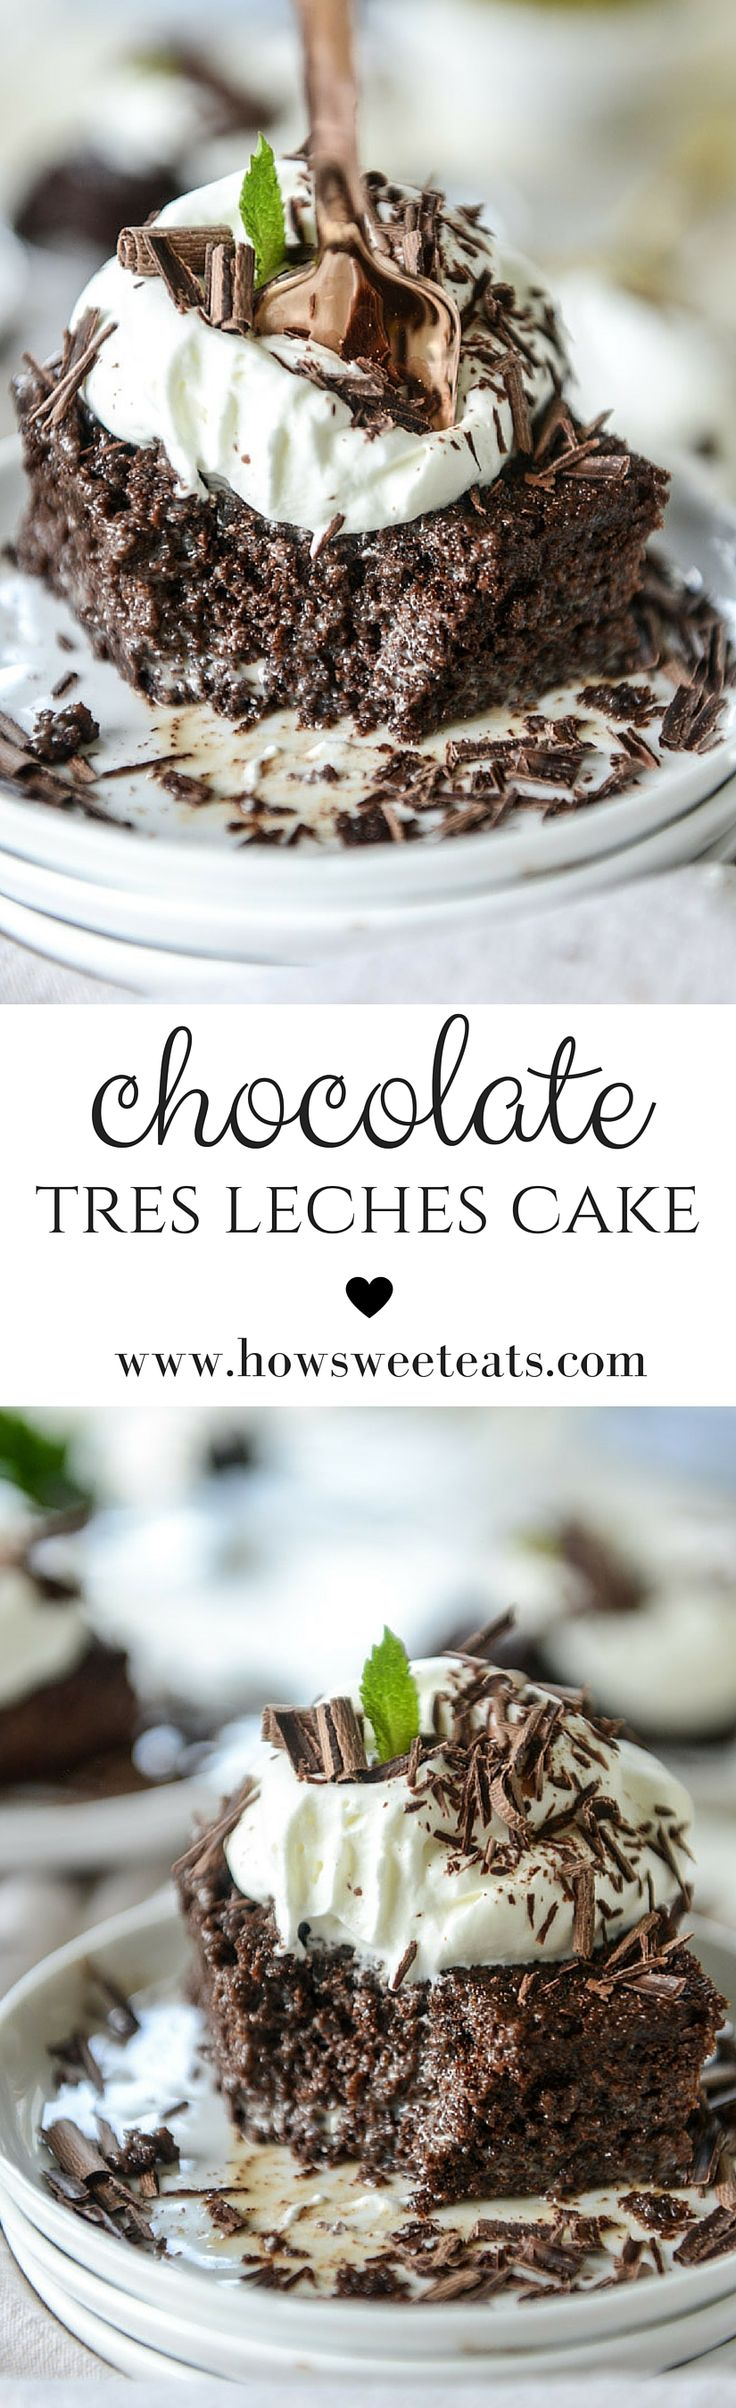 Best 25+ Chocolate tres leches cake ideas only on Pinterest | Tres ...